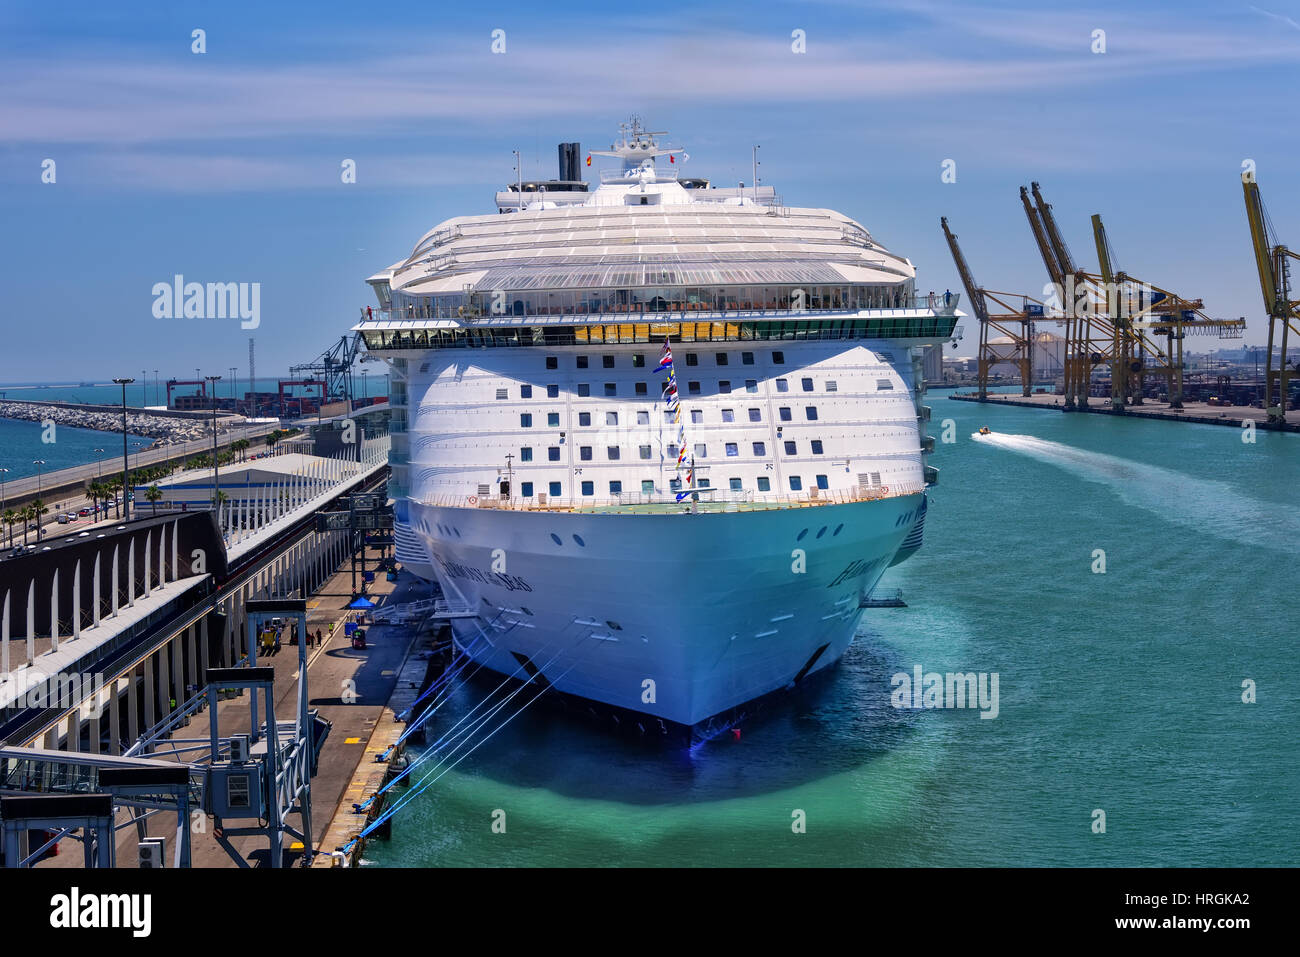 Barcelona, Spain - June 7, 2016:  Royal Caribbean's, Harmony of the Seas, is now the largest ship in the world, - Stock Image